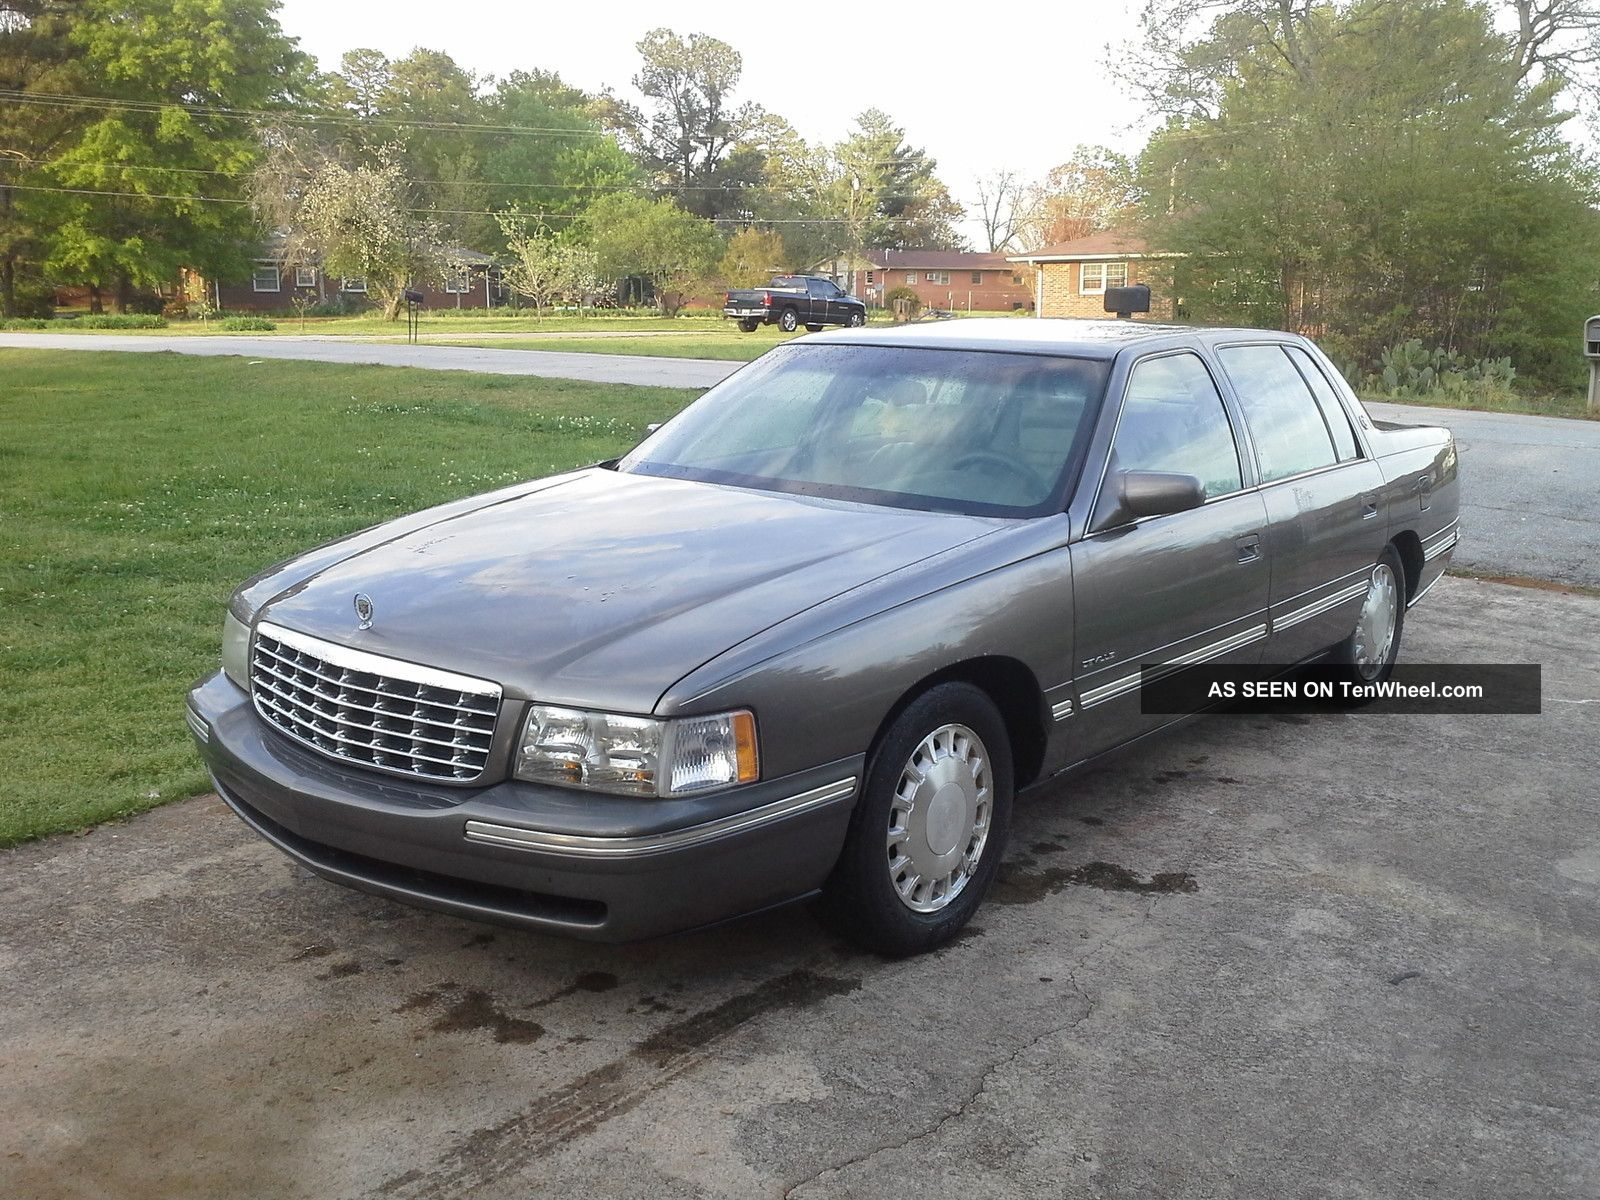 1999 cadillac deville. Cars Review. Best American Auto & Cars Review